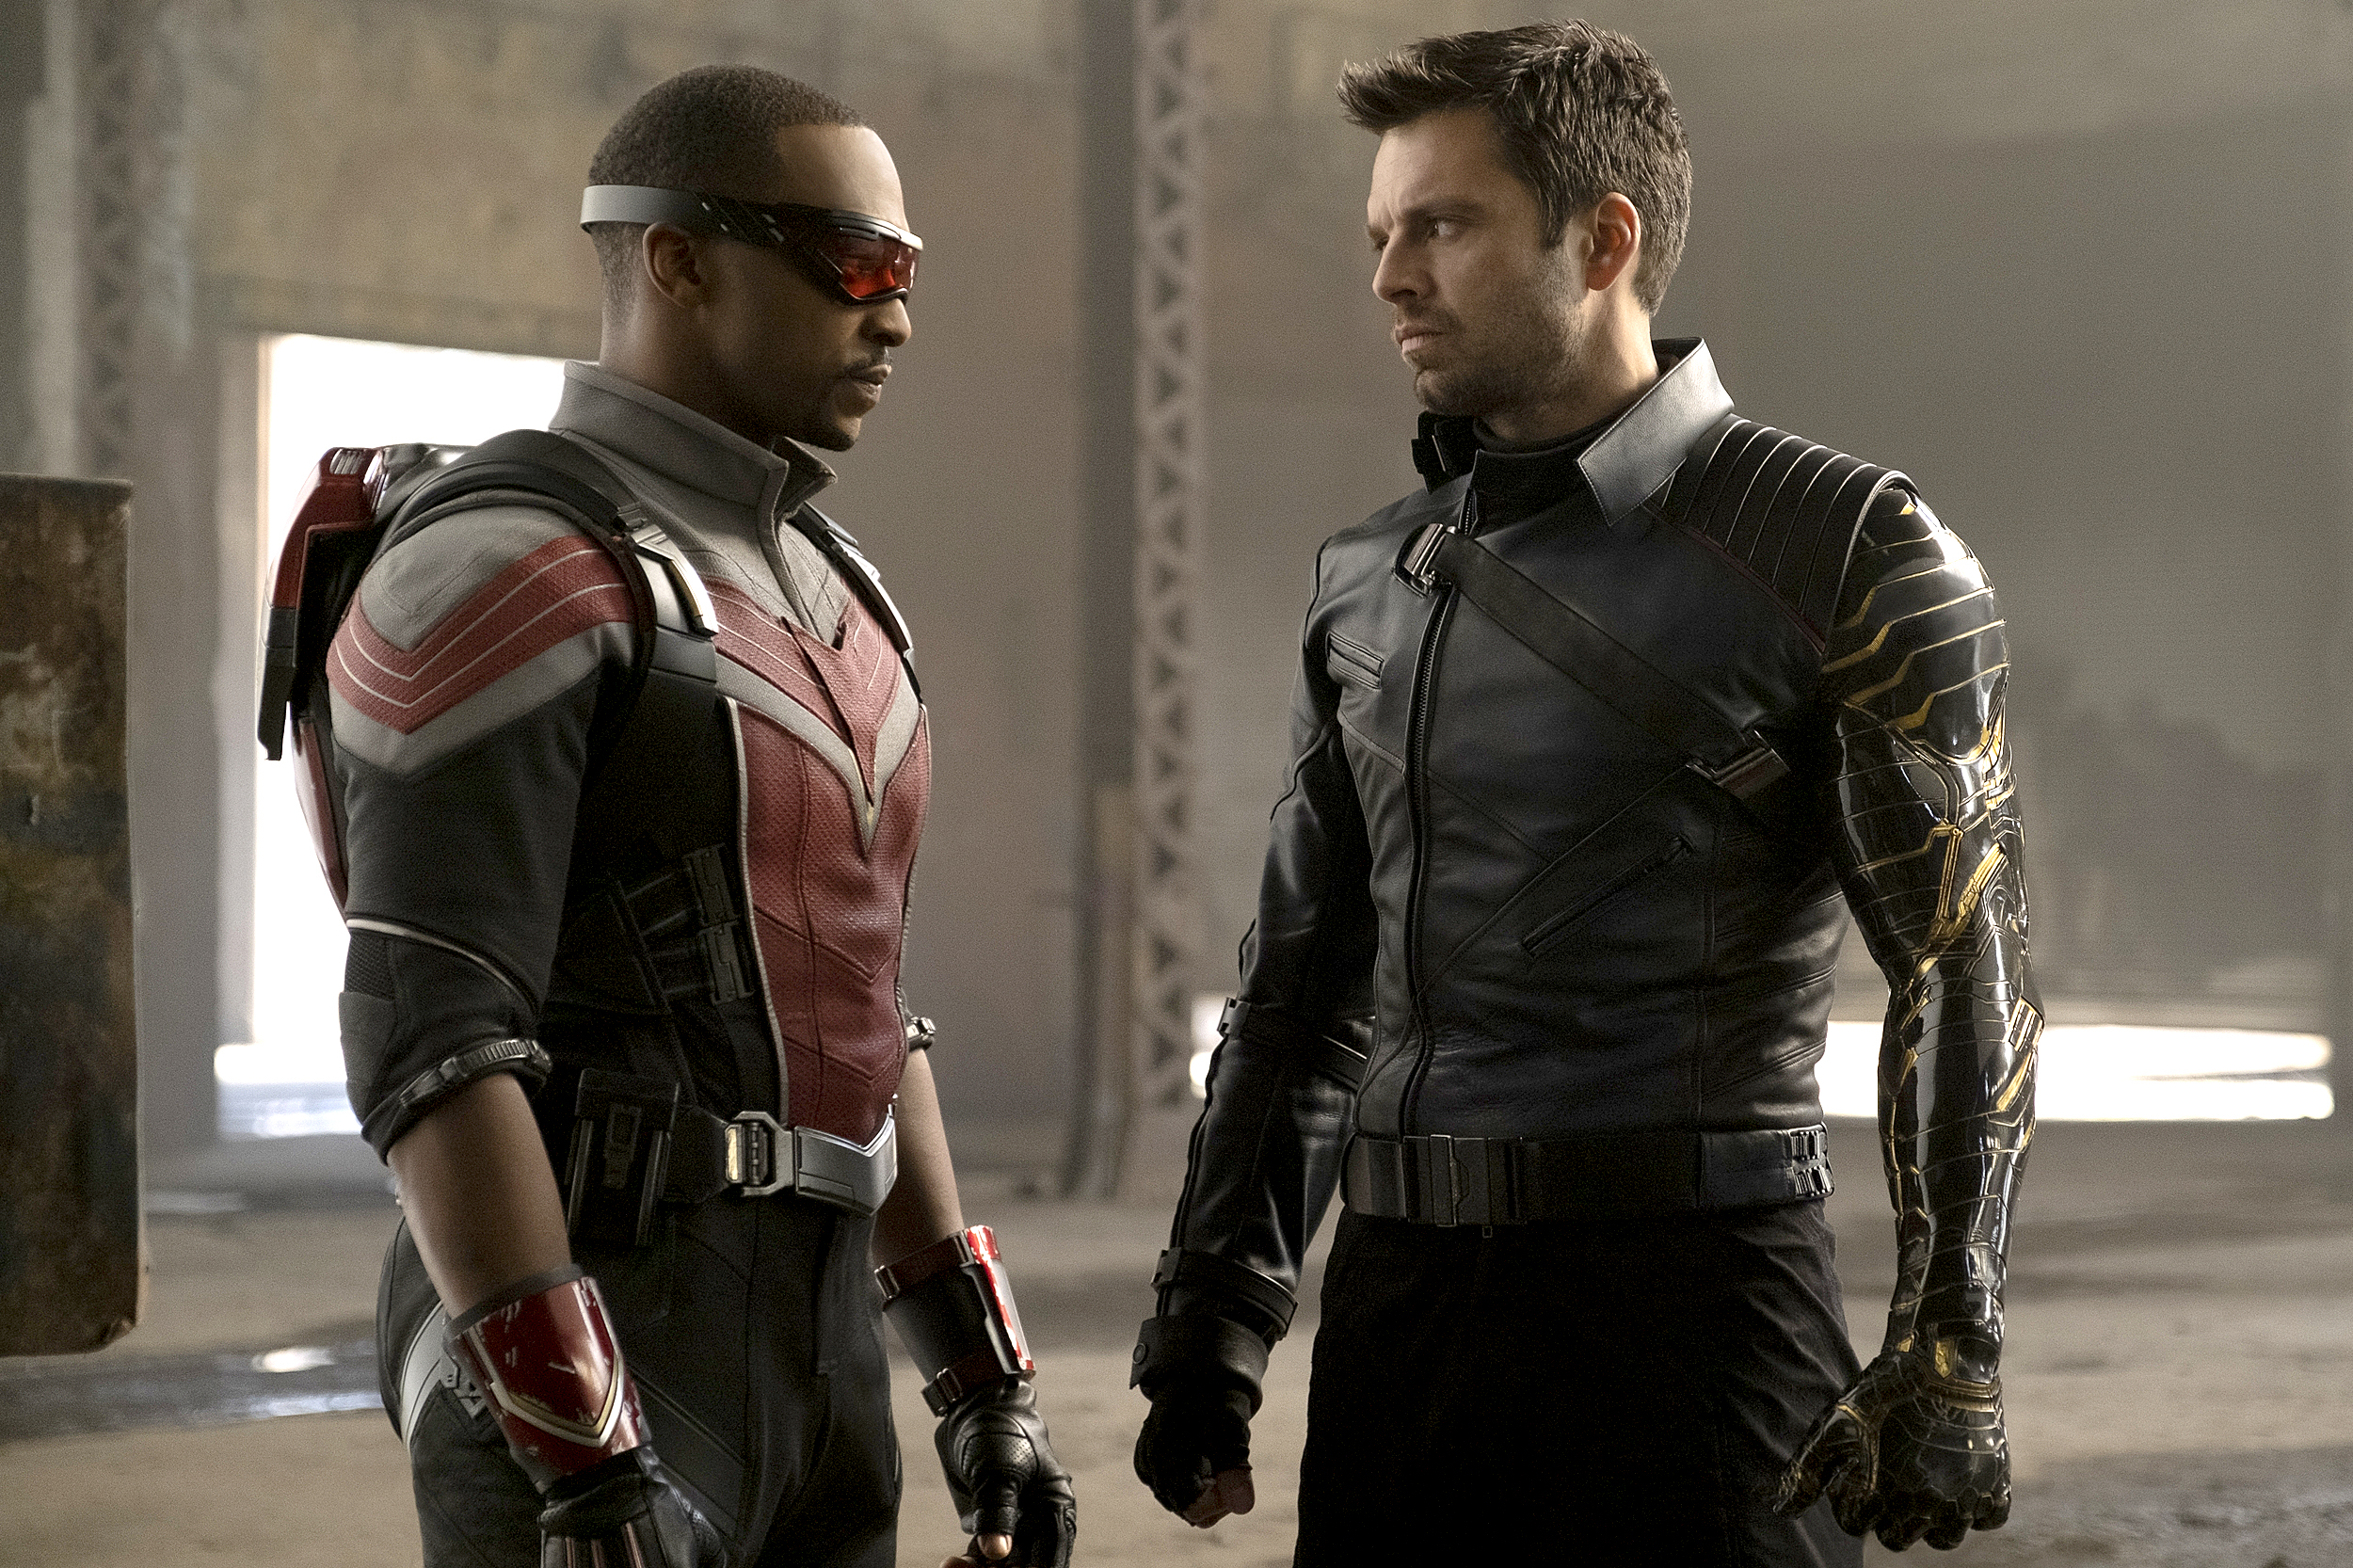 Disney+ series 'The Falcon and The Winter Soldier' avoids America's tougher  realities